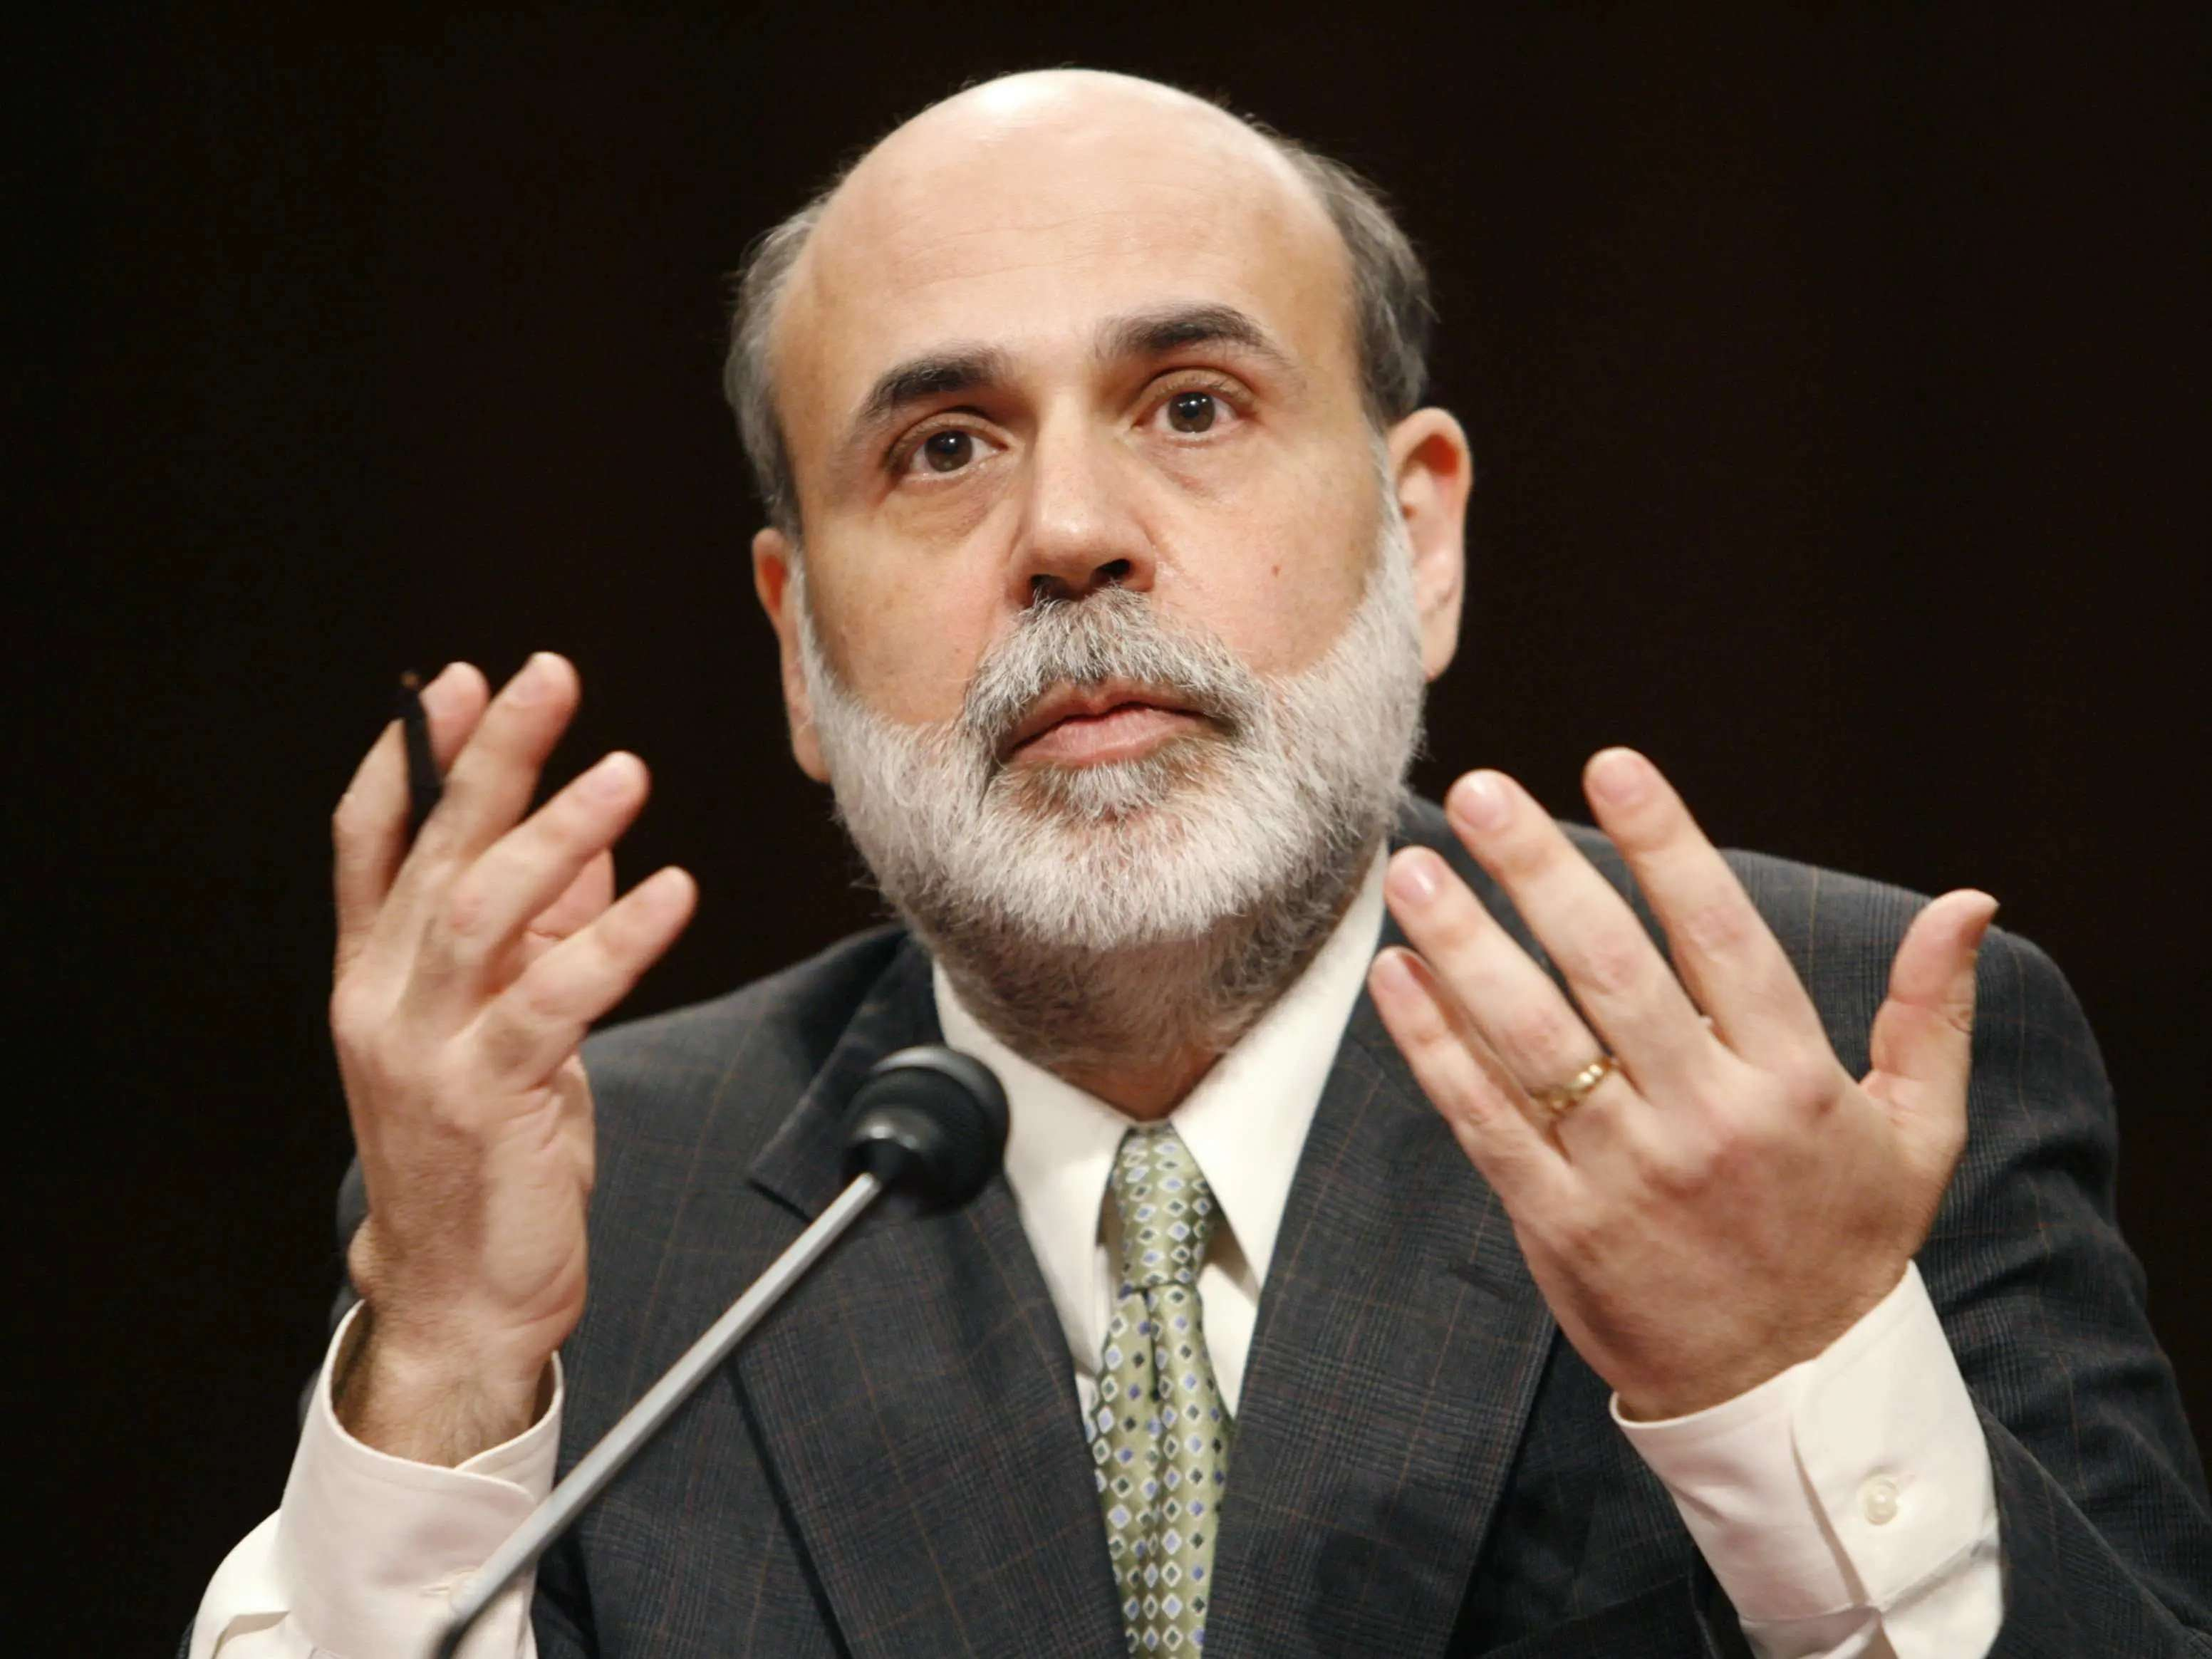 SEP 17, 2008: The Fed rescues insurance giant AIG from bankruptcy for $85 billion.